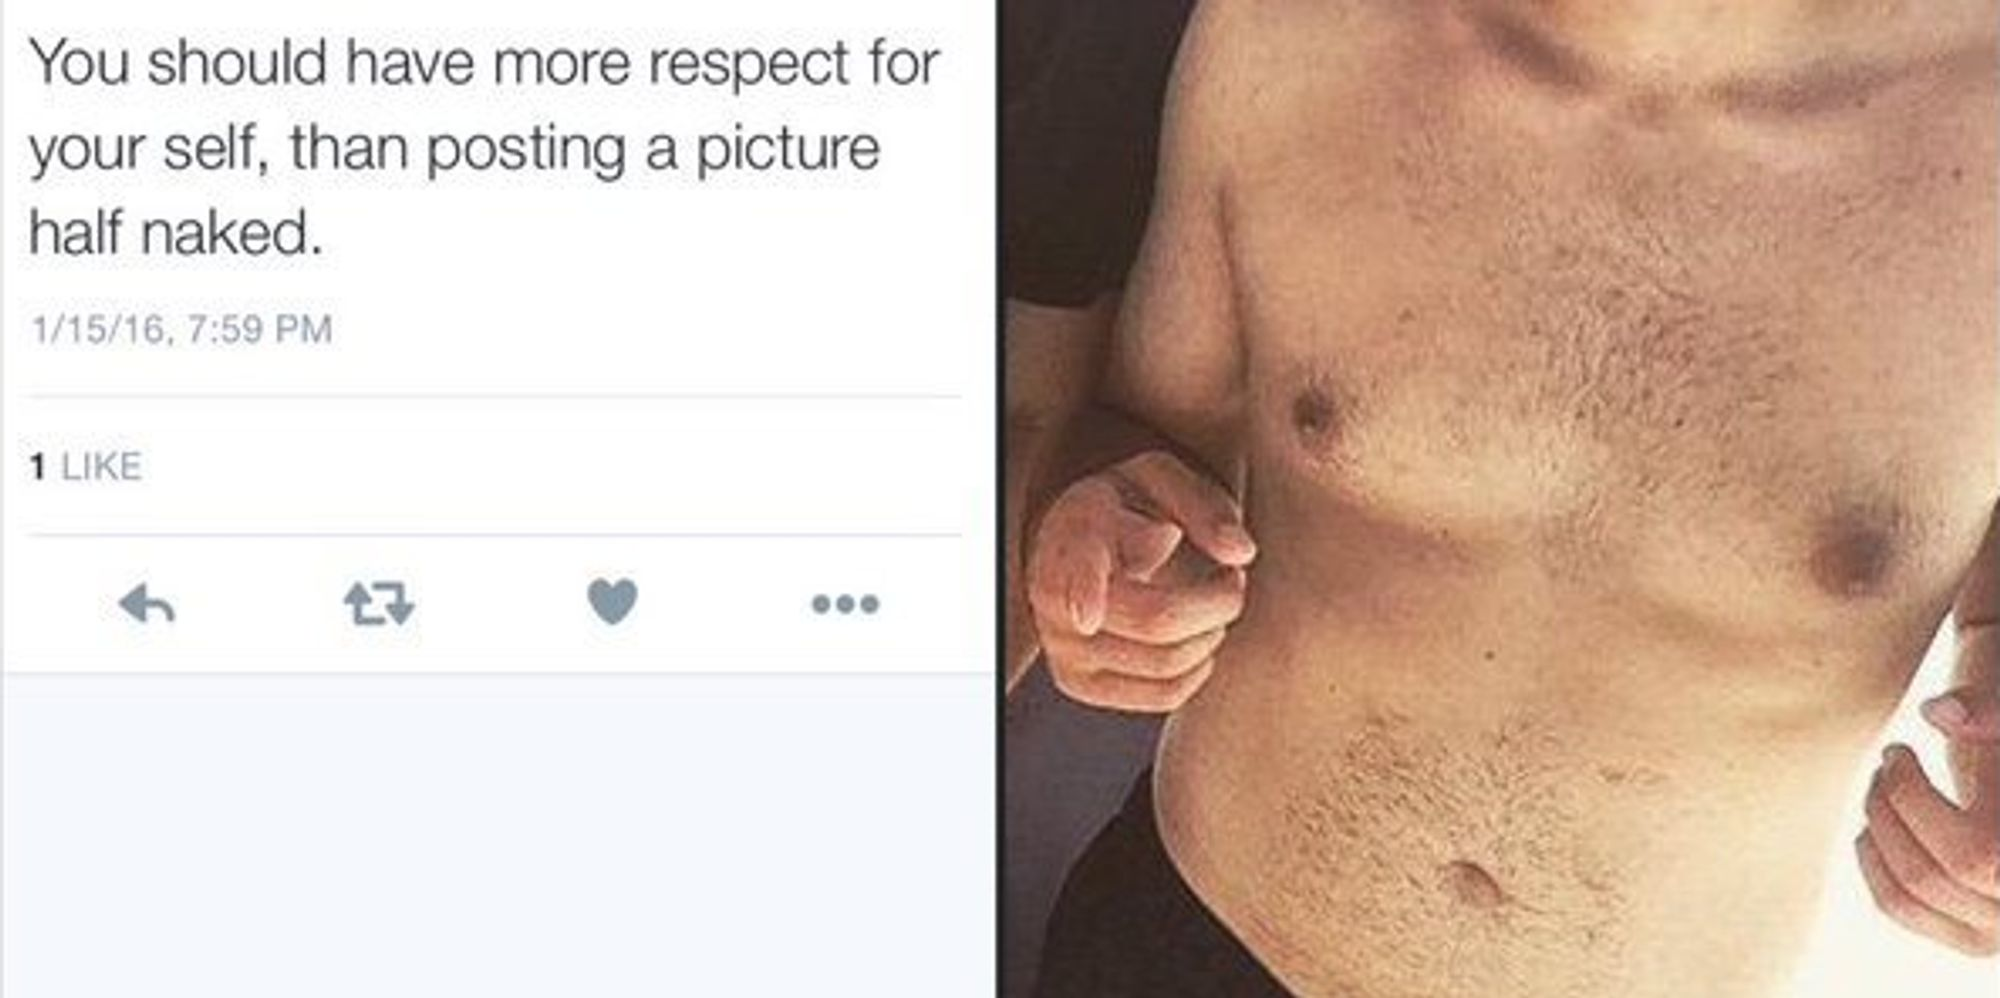 double standard nudity boys Woman Calls Out Shirtless Men Who Shame Shirtless Women | The Huffington Post